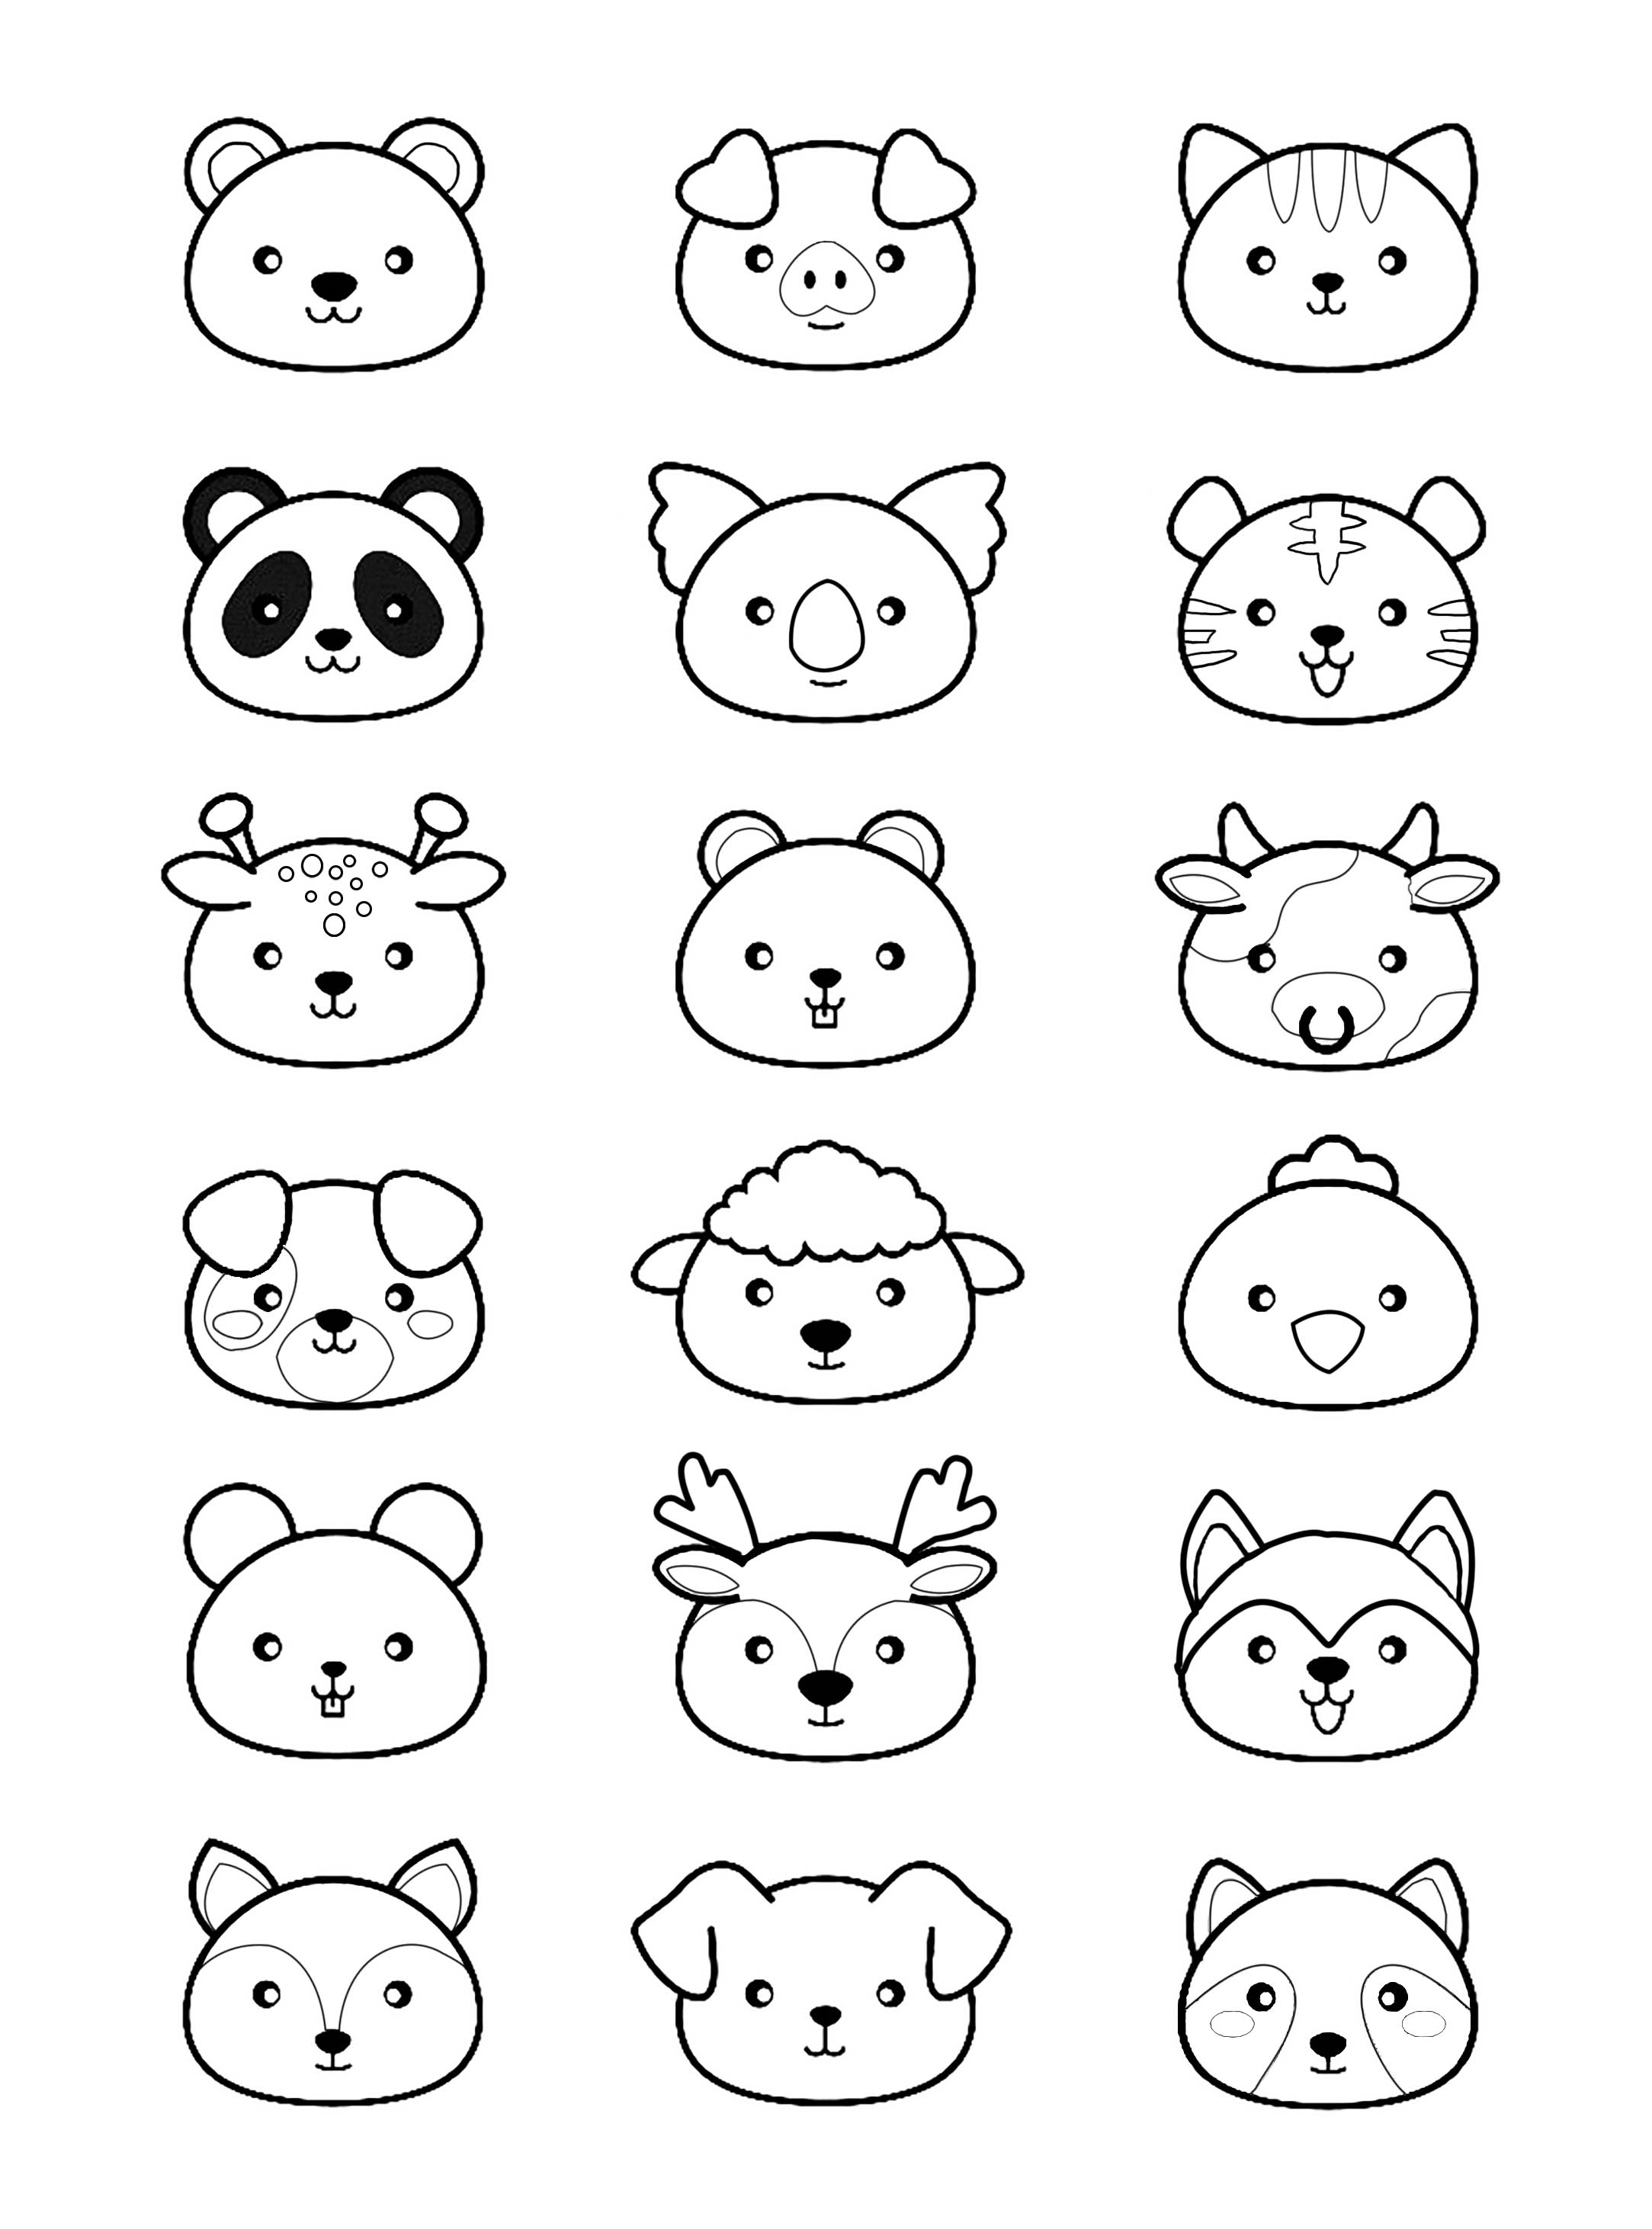 Coloriage Kawaii.Kawaii Free To Color For Children Coloriage Kawaii Kids Coloring Pages